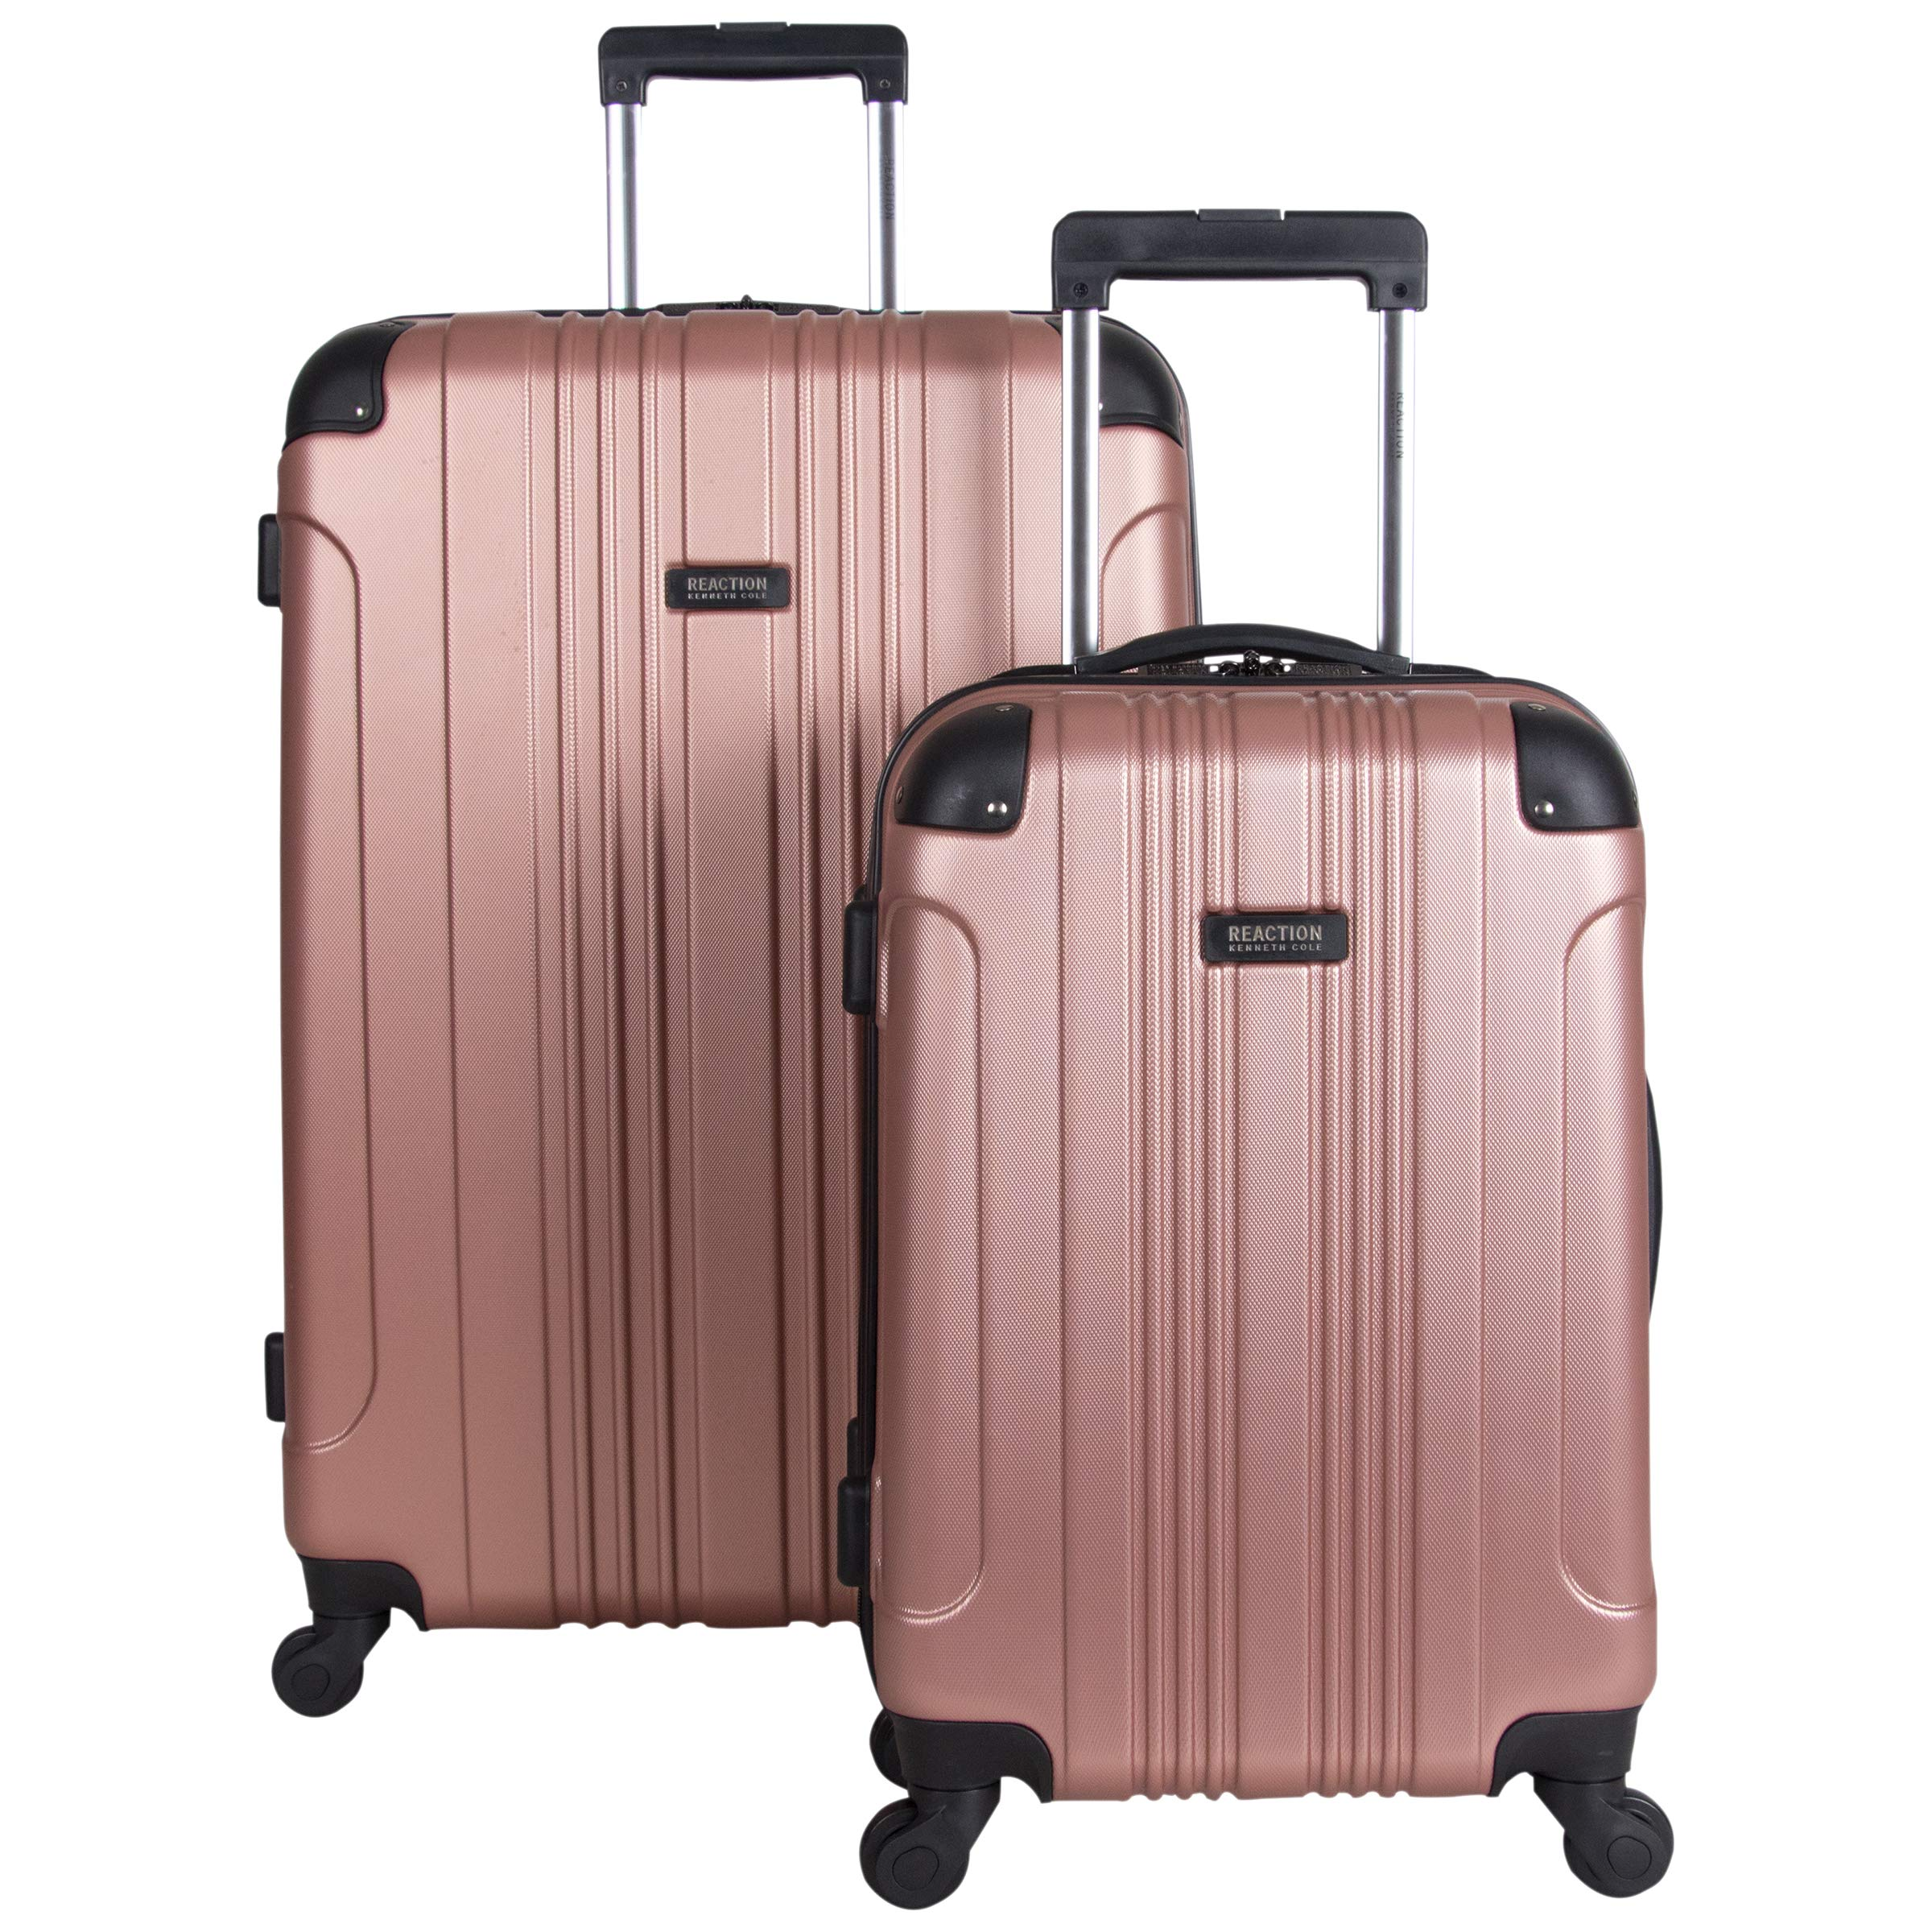 Kenneth Cole Reaction Out Of Bounds 2-Piece Lightweight Hardside 4-Wheel Spinner Luggage Set: 20'' Carry-On & 28'' Checked Suitcase